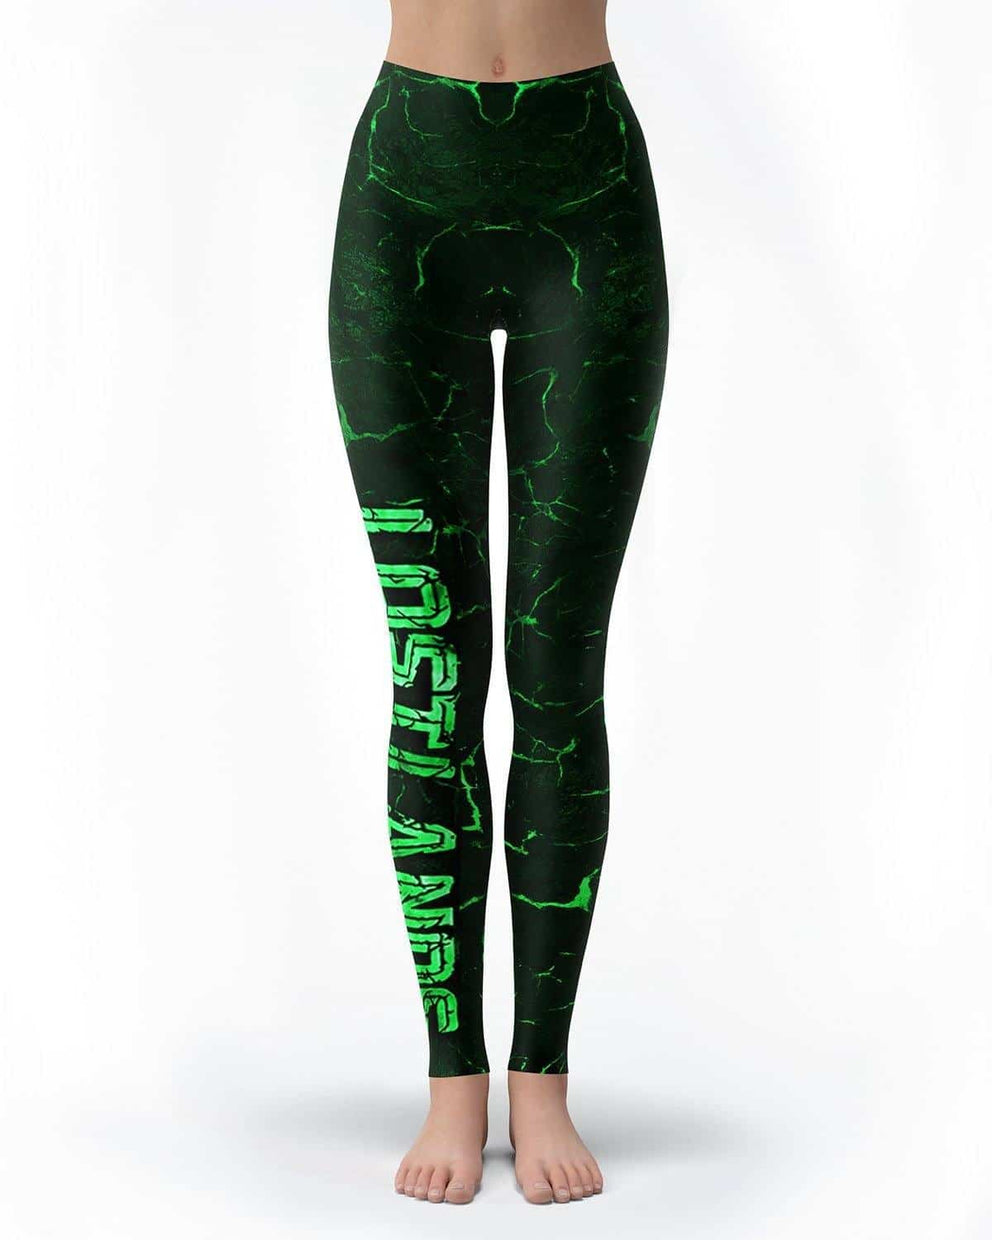 Lost Lands All Over Print Leggings - Green